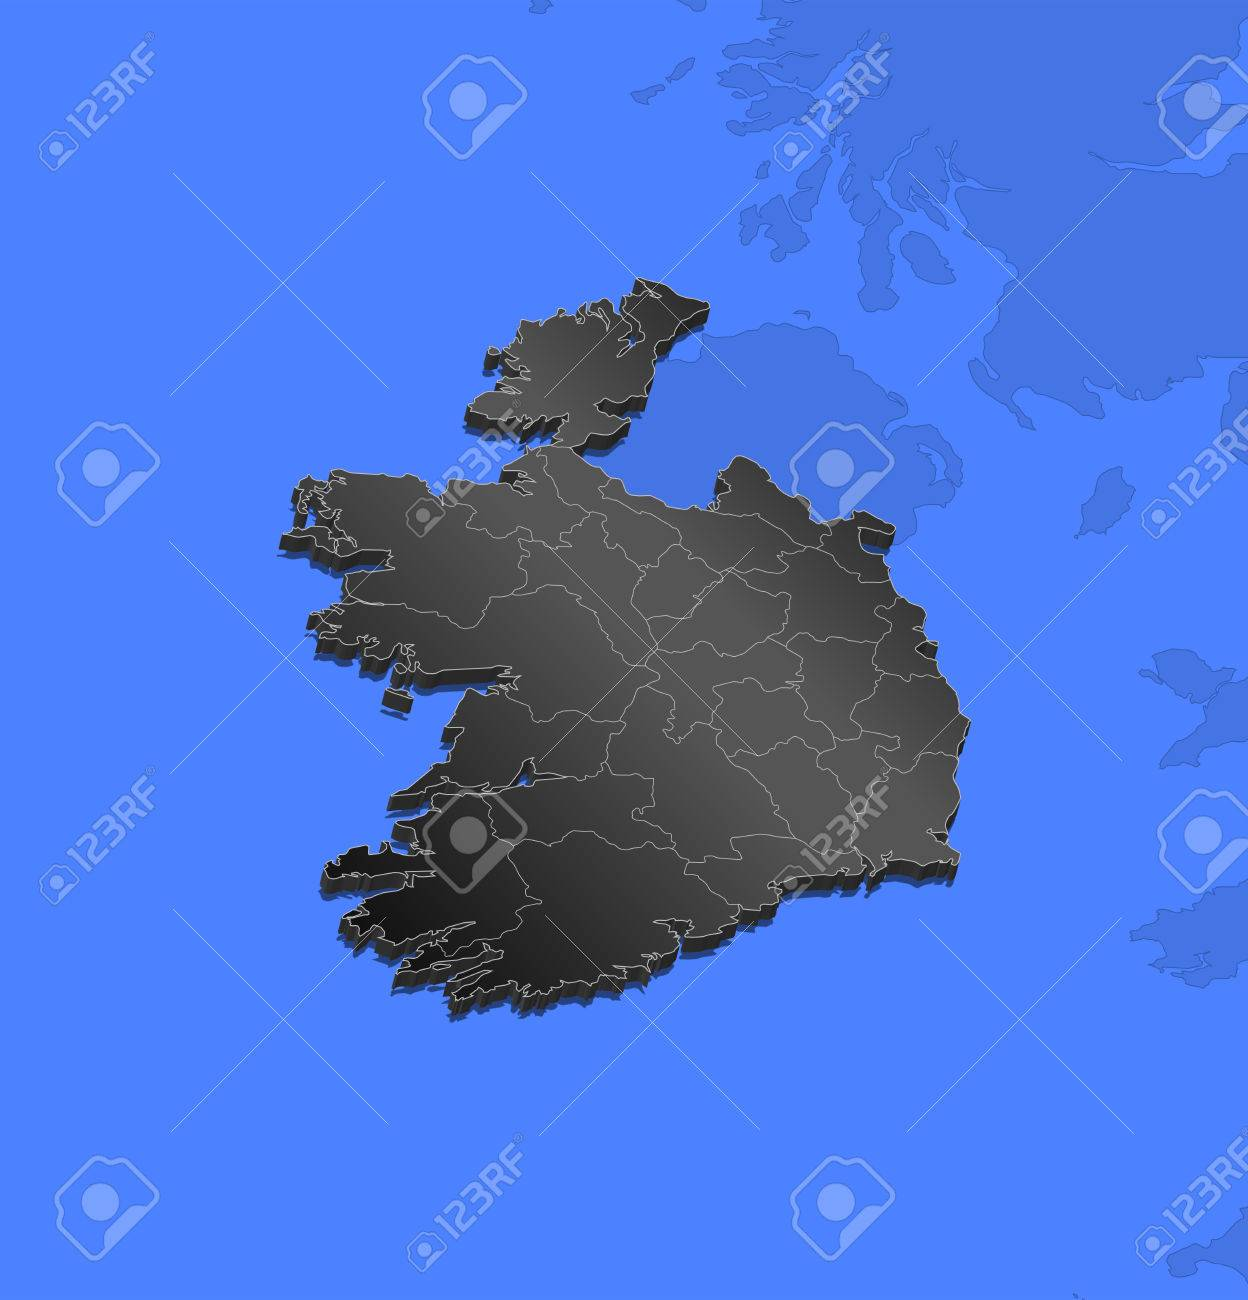 Map of ireland and nearby countries ireland as a black piece map of ireland and nearby countries ireland as a black piece stock vector gumiabroncs Choice Image